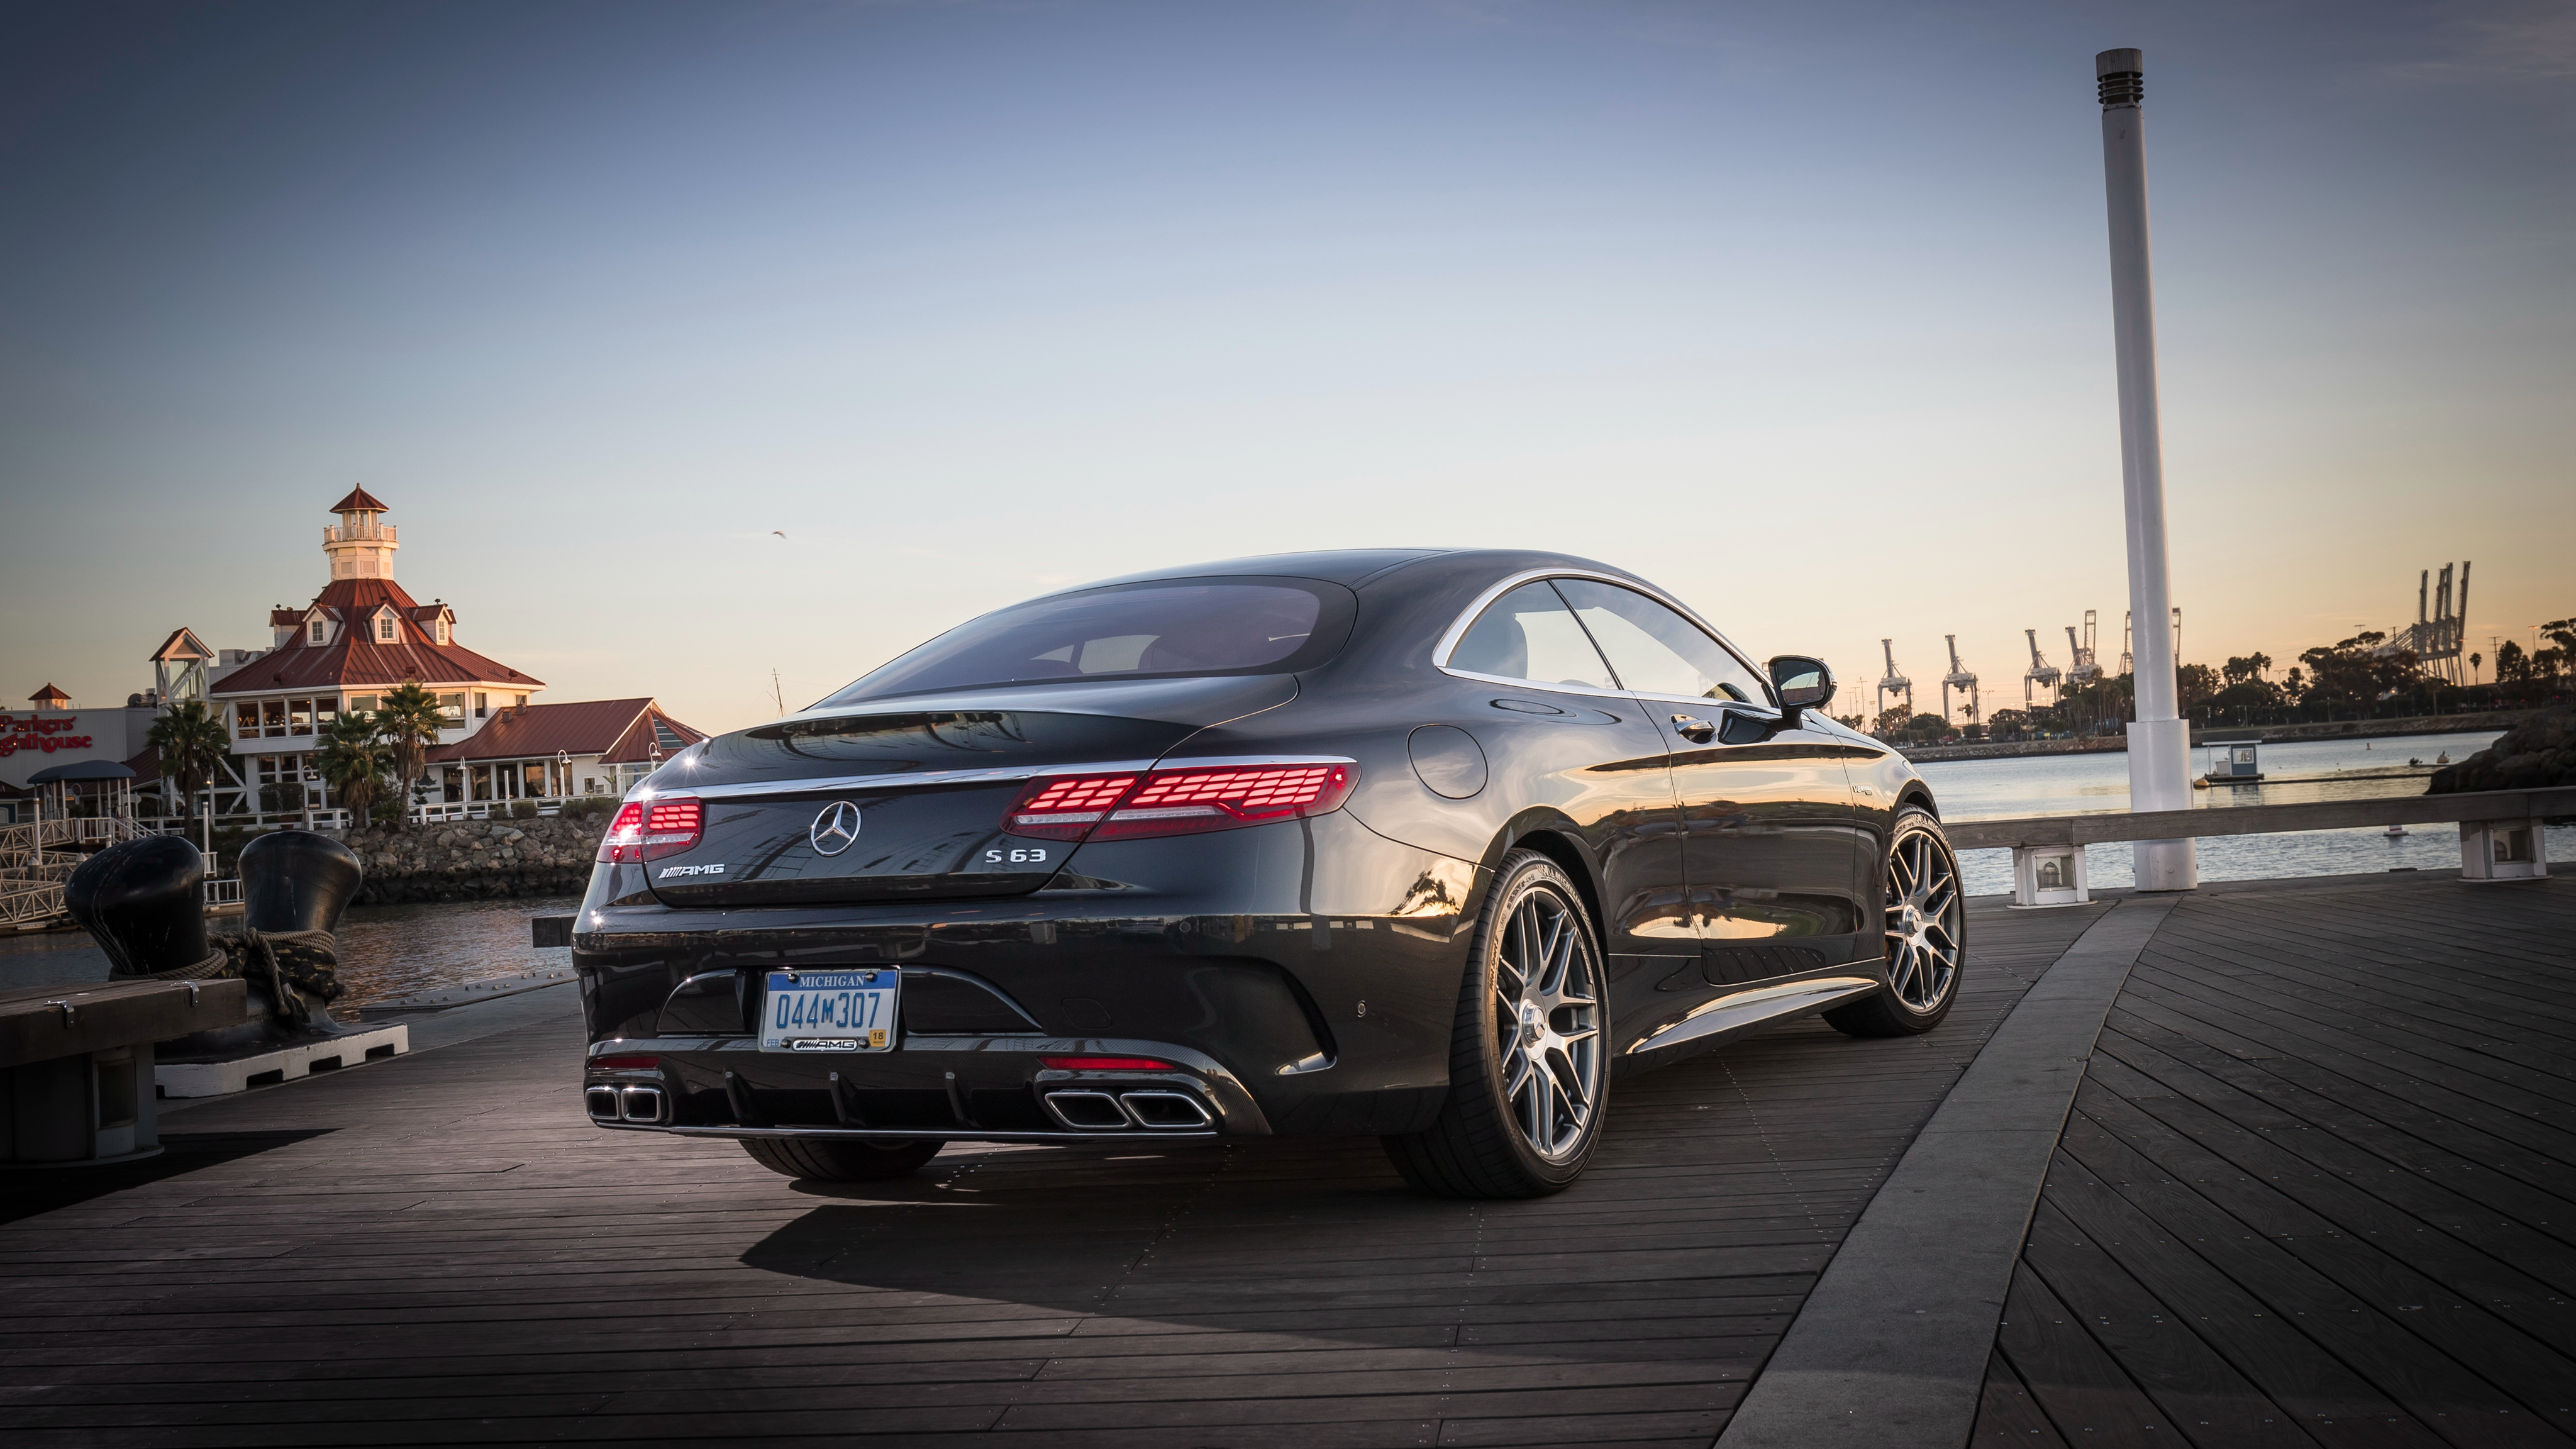 2018 Mercedes Amg S63 4matic Coupe C217 Benz Wallpaper